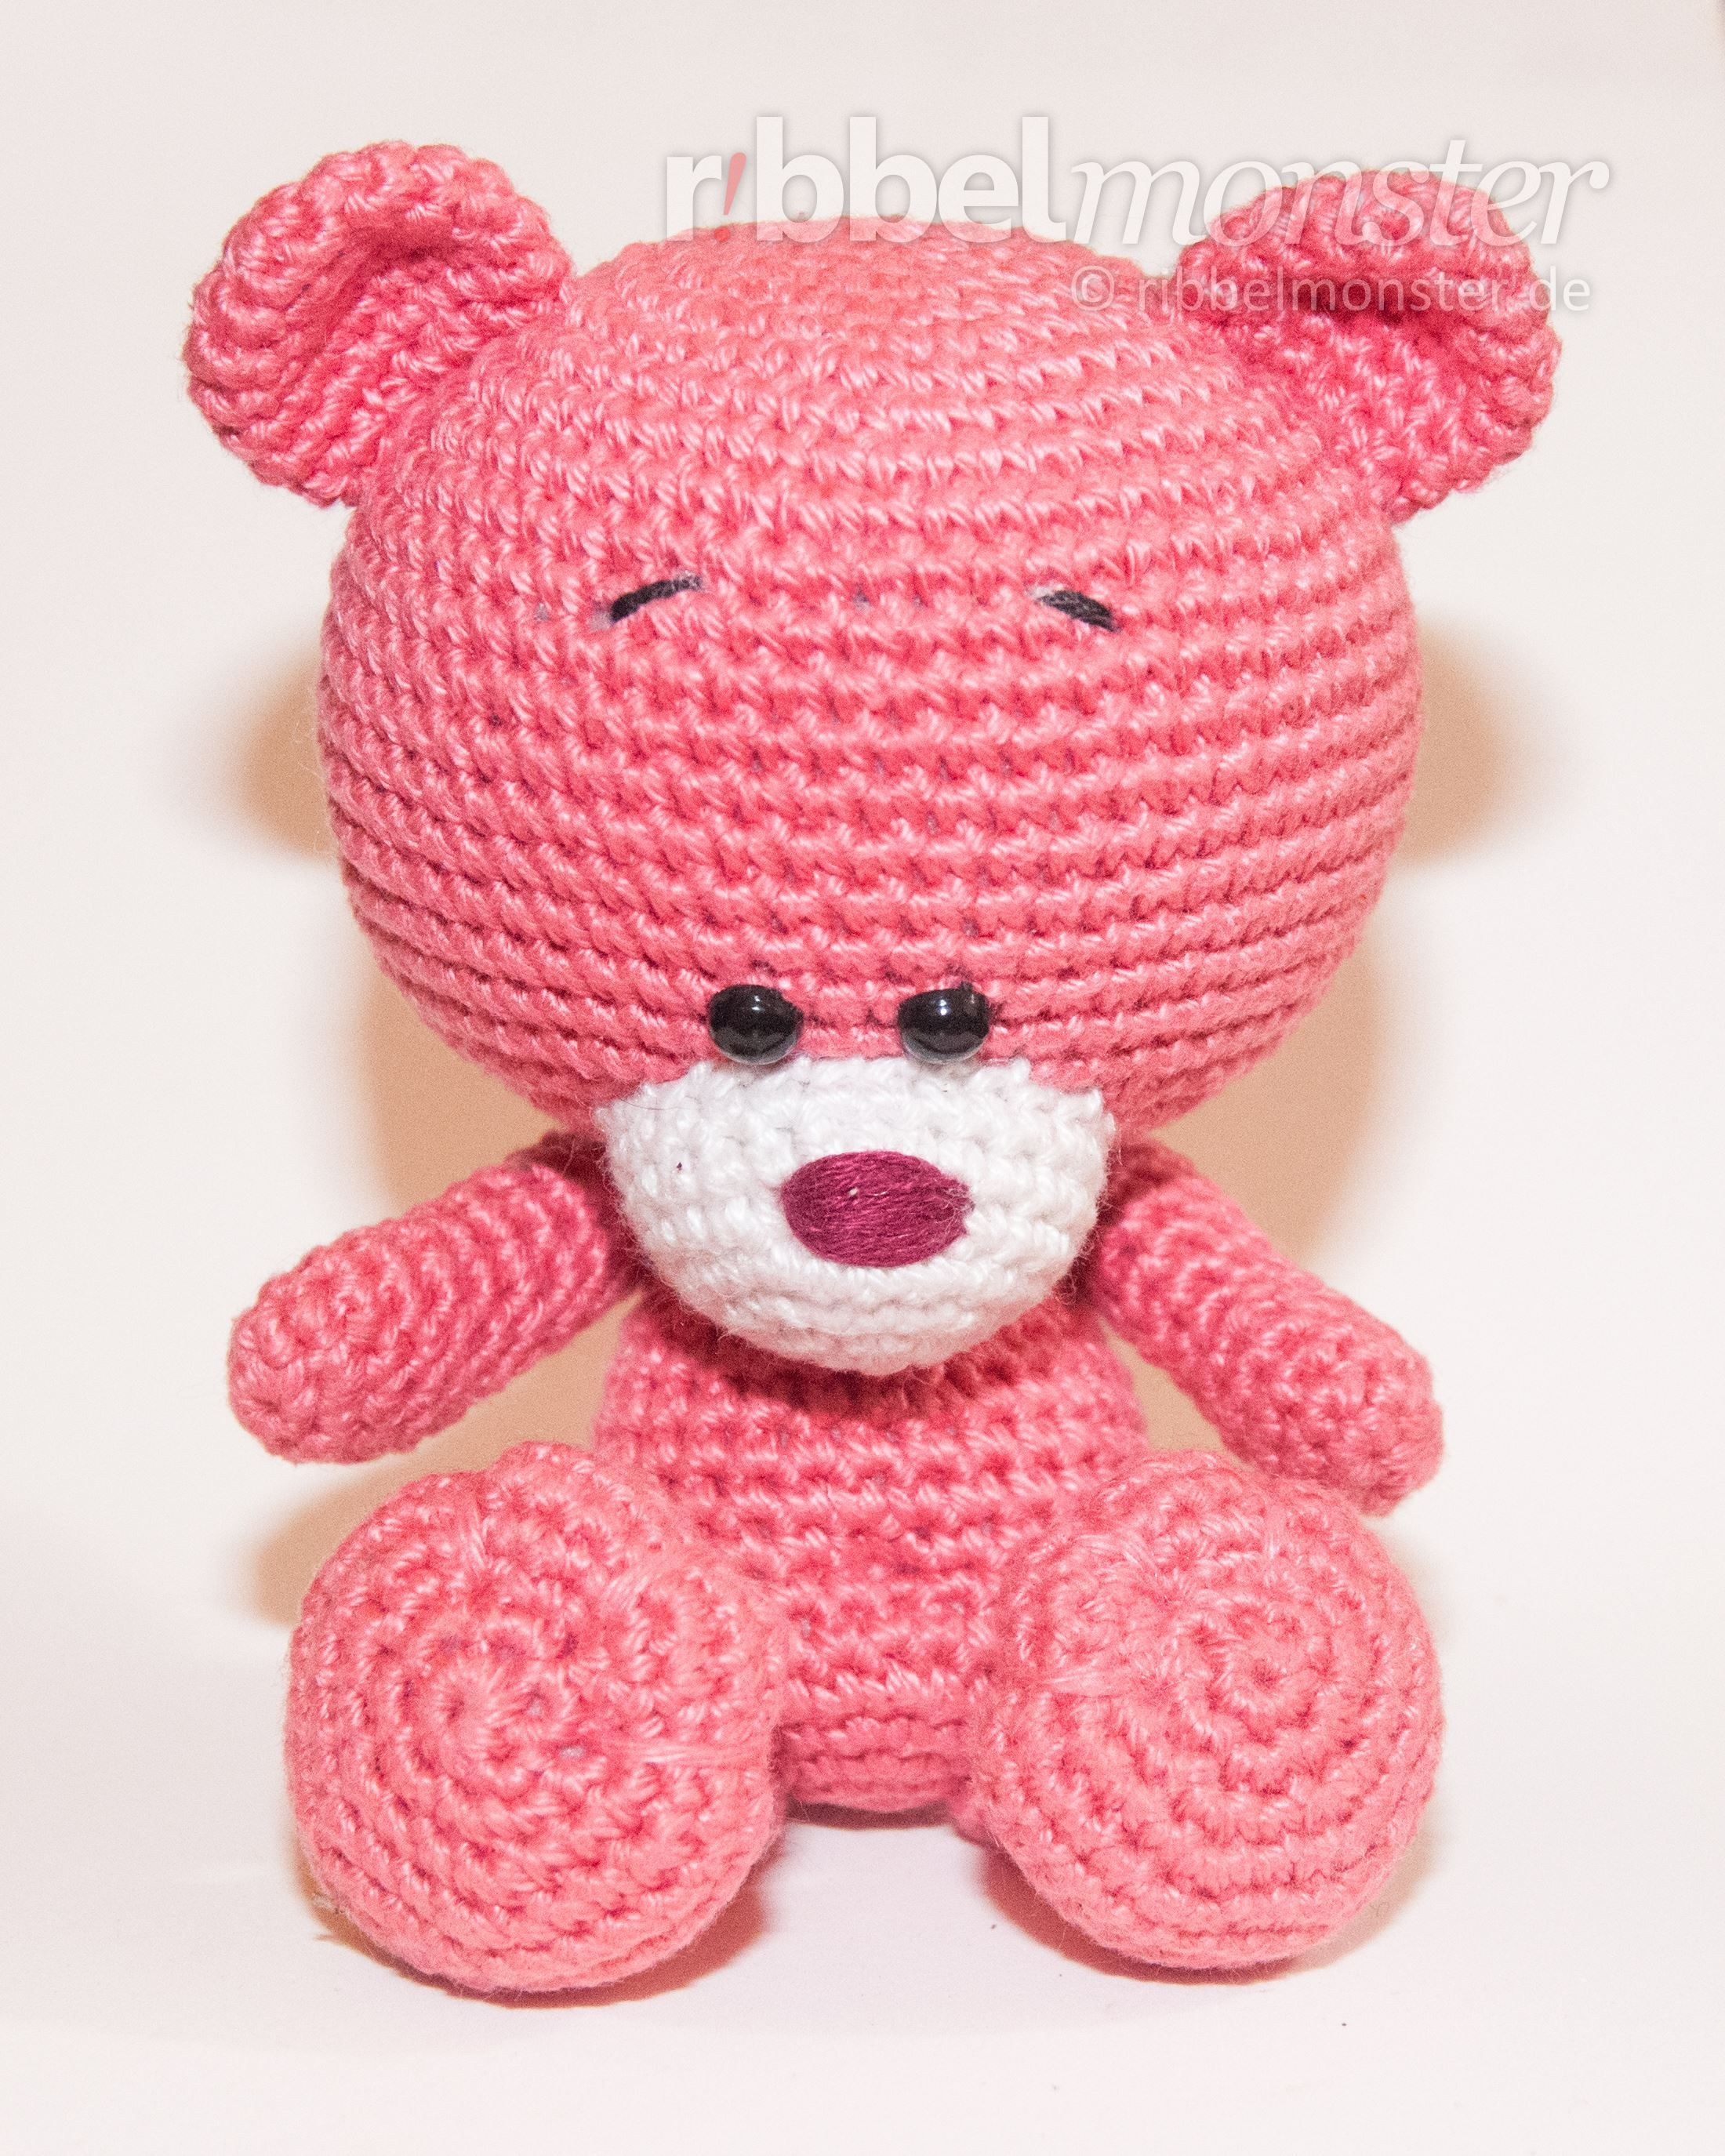 kostenlose anleitung amigurumi teddy h keln pina amigurumi pinterest teddy h keln. Black Bedroom Furniture Sets. Home Design Ideas